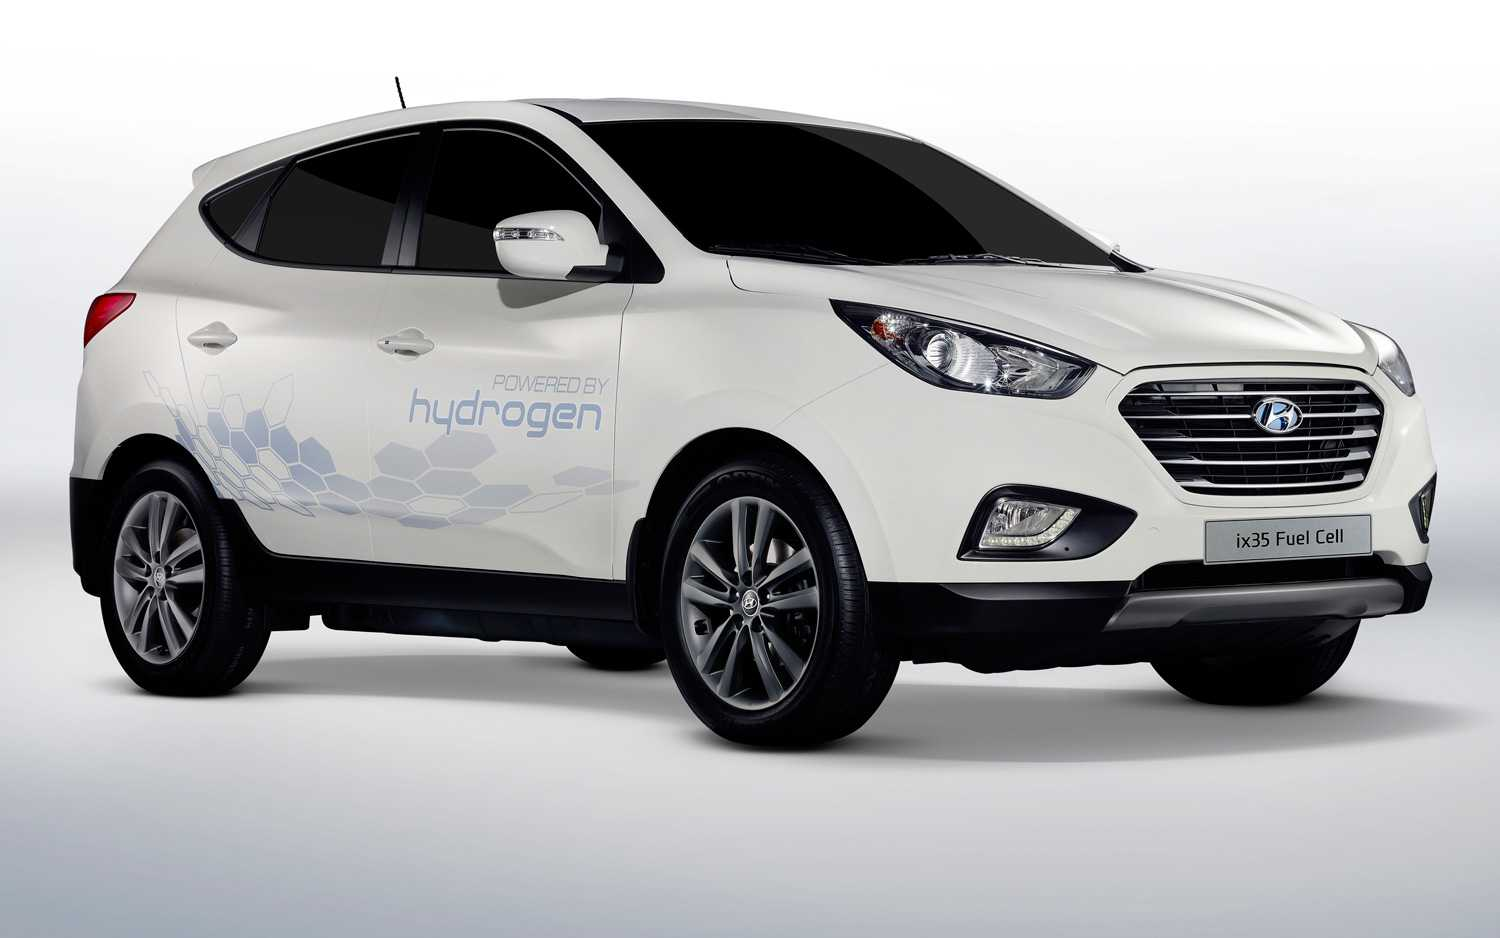 Hyundai Is Working On Next Generation Fuel Cell, Aims To Launch It In 2018